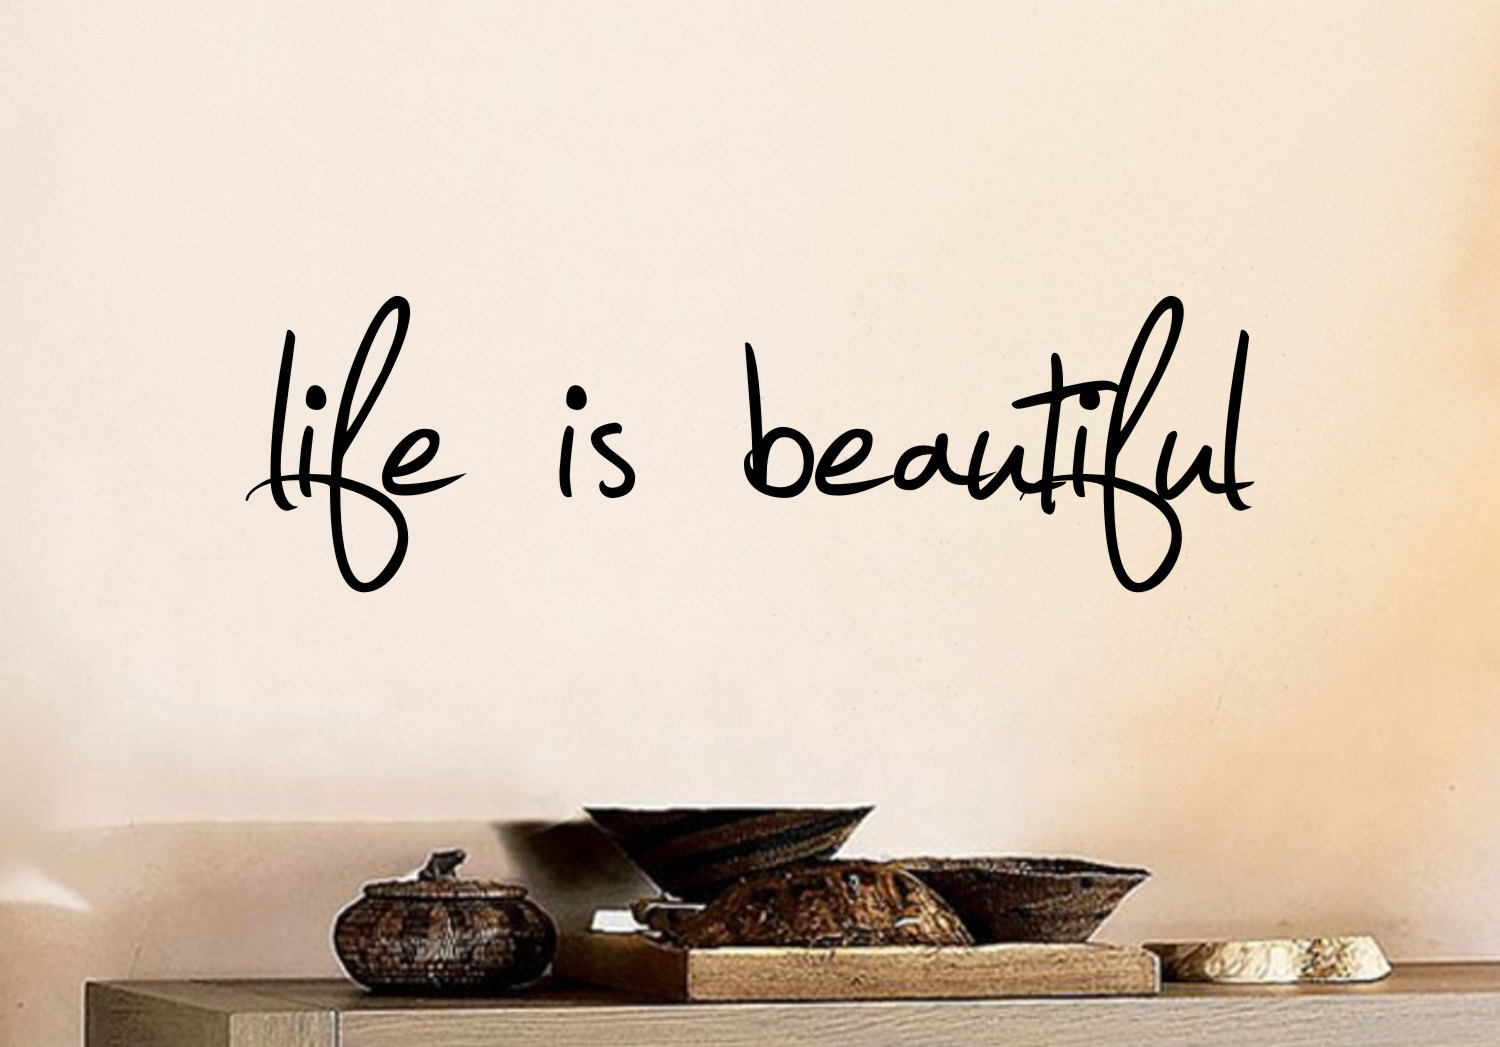 Beautiful Quotes About Life Hd Wallpapers 27 Pics Reflections From Me